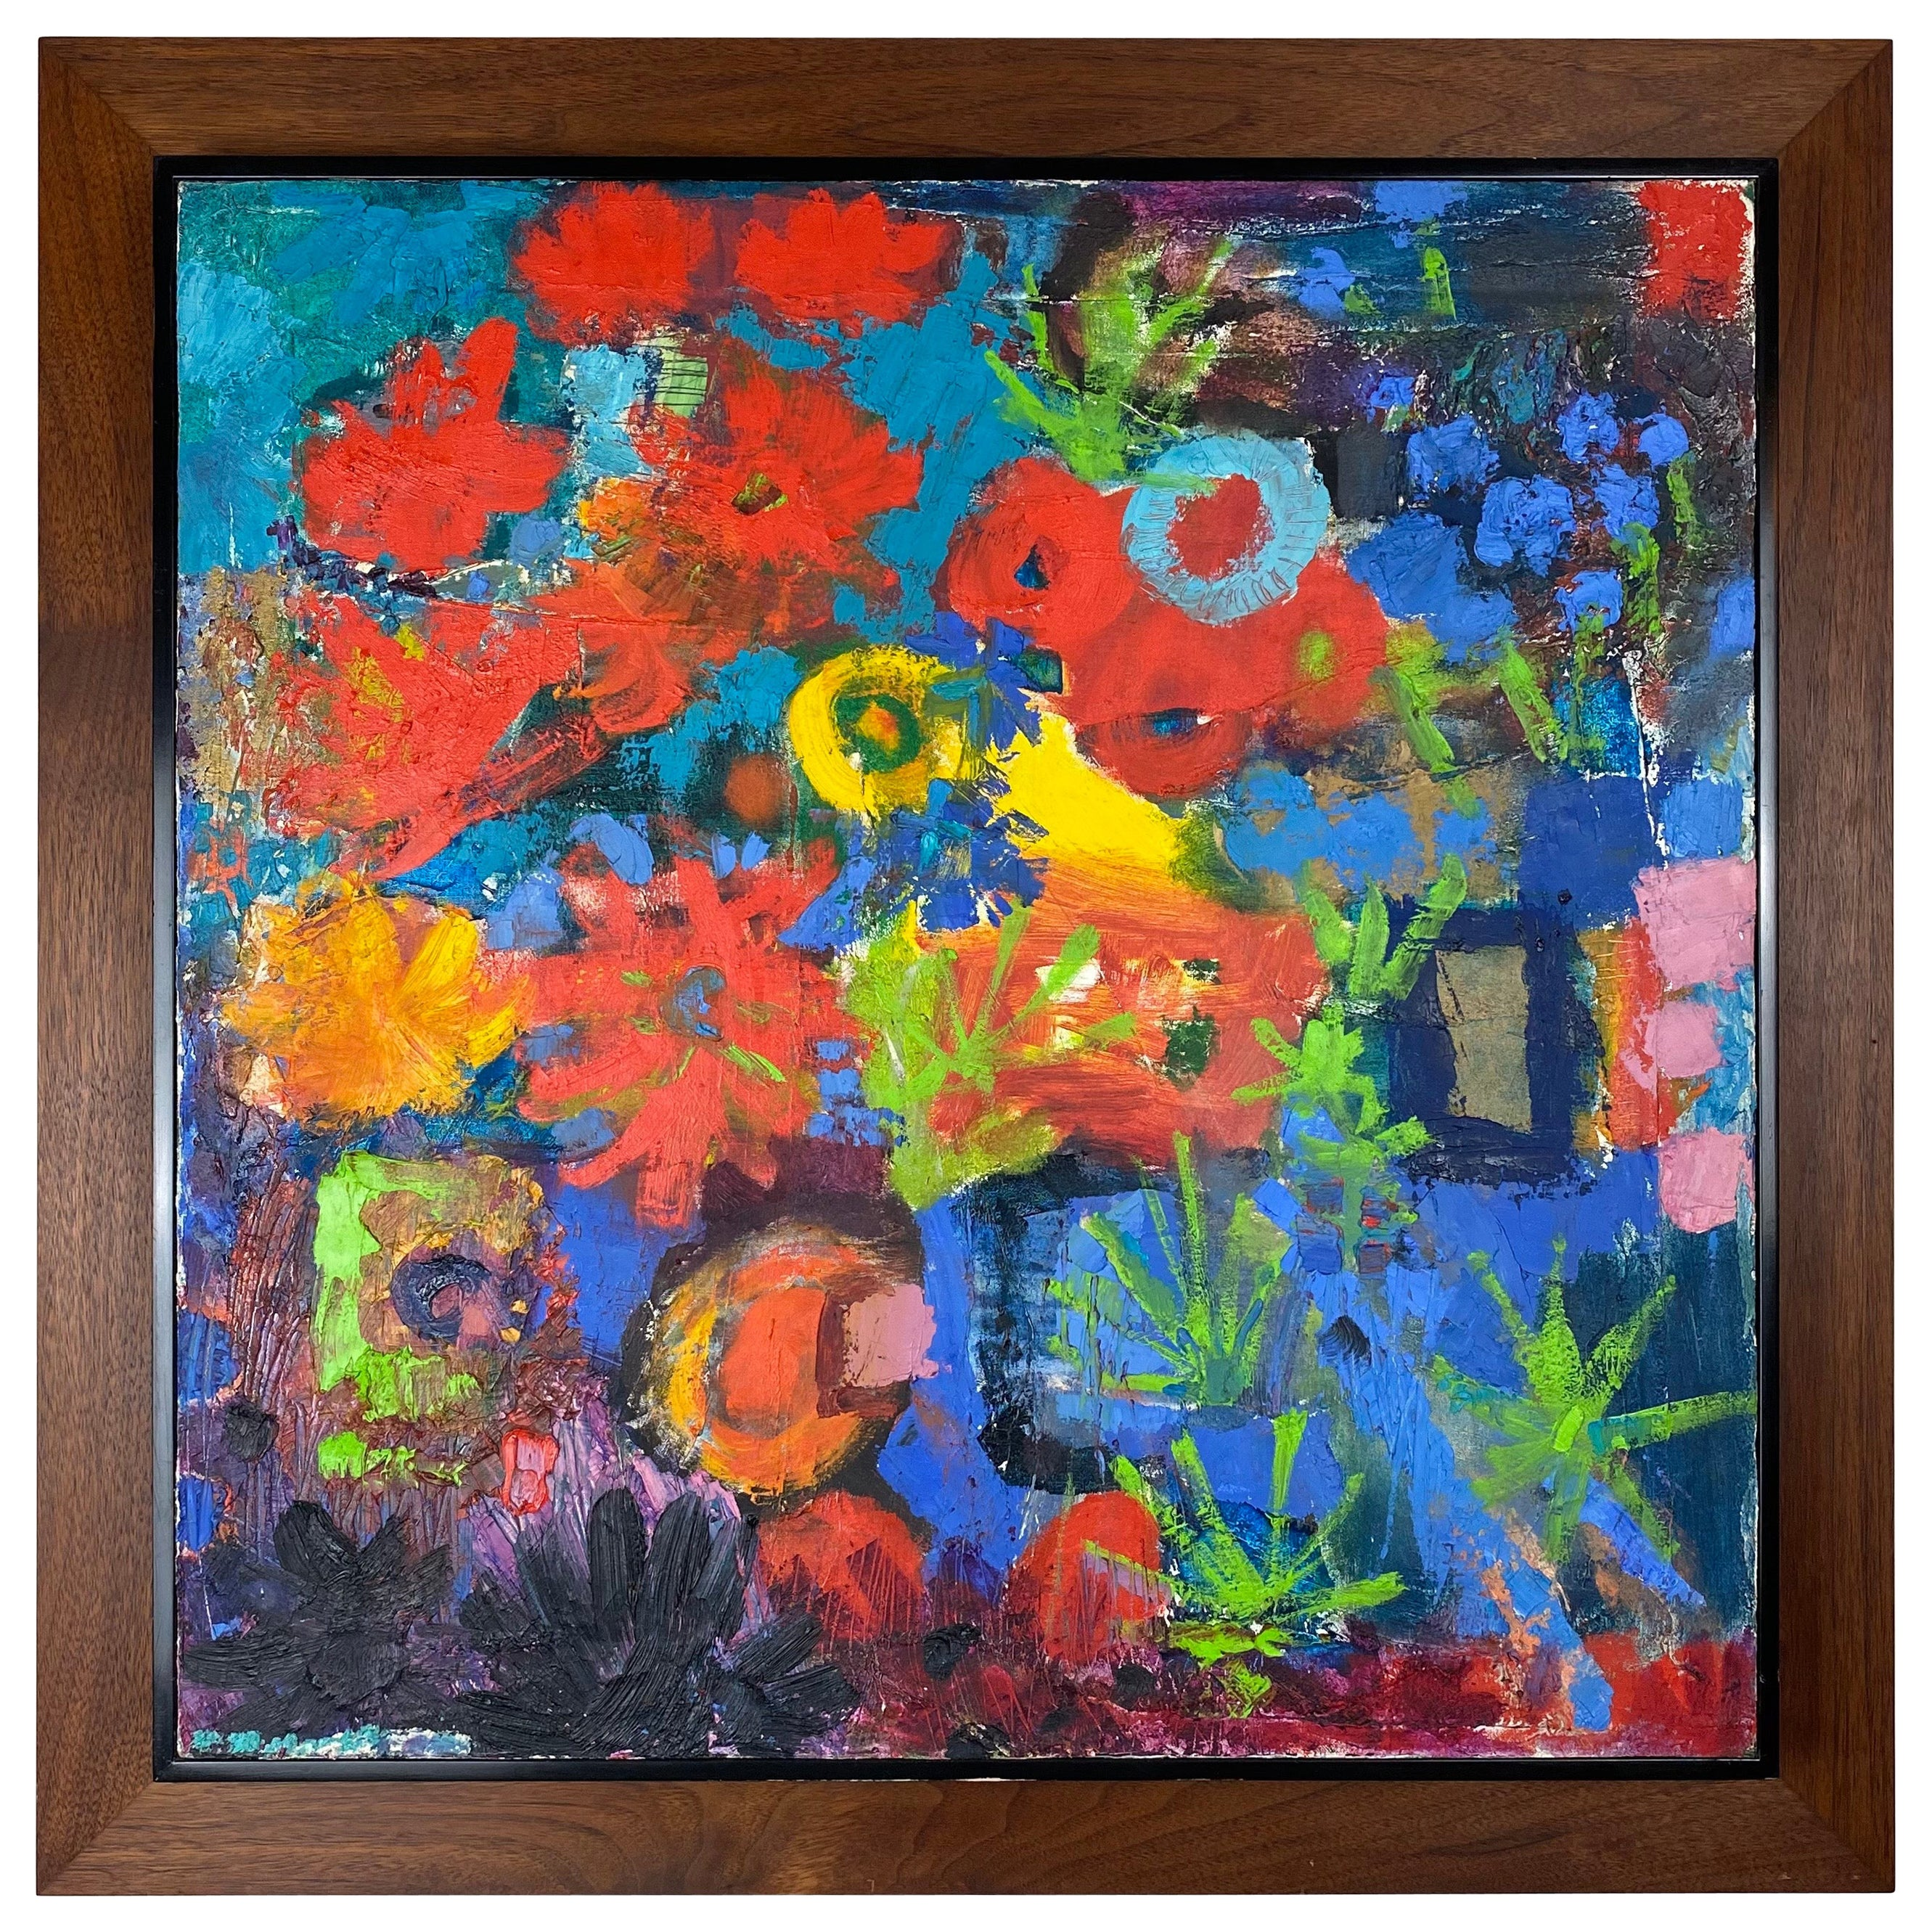 Vintage Modern Abstract Expressionist Floral Still-Life Painting